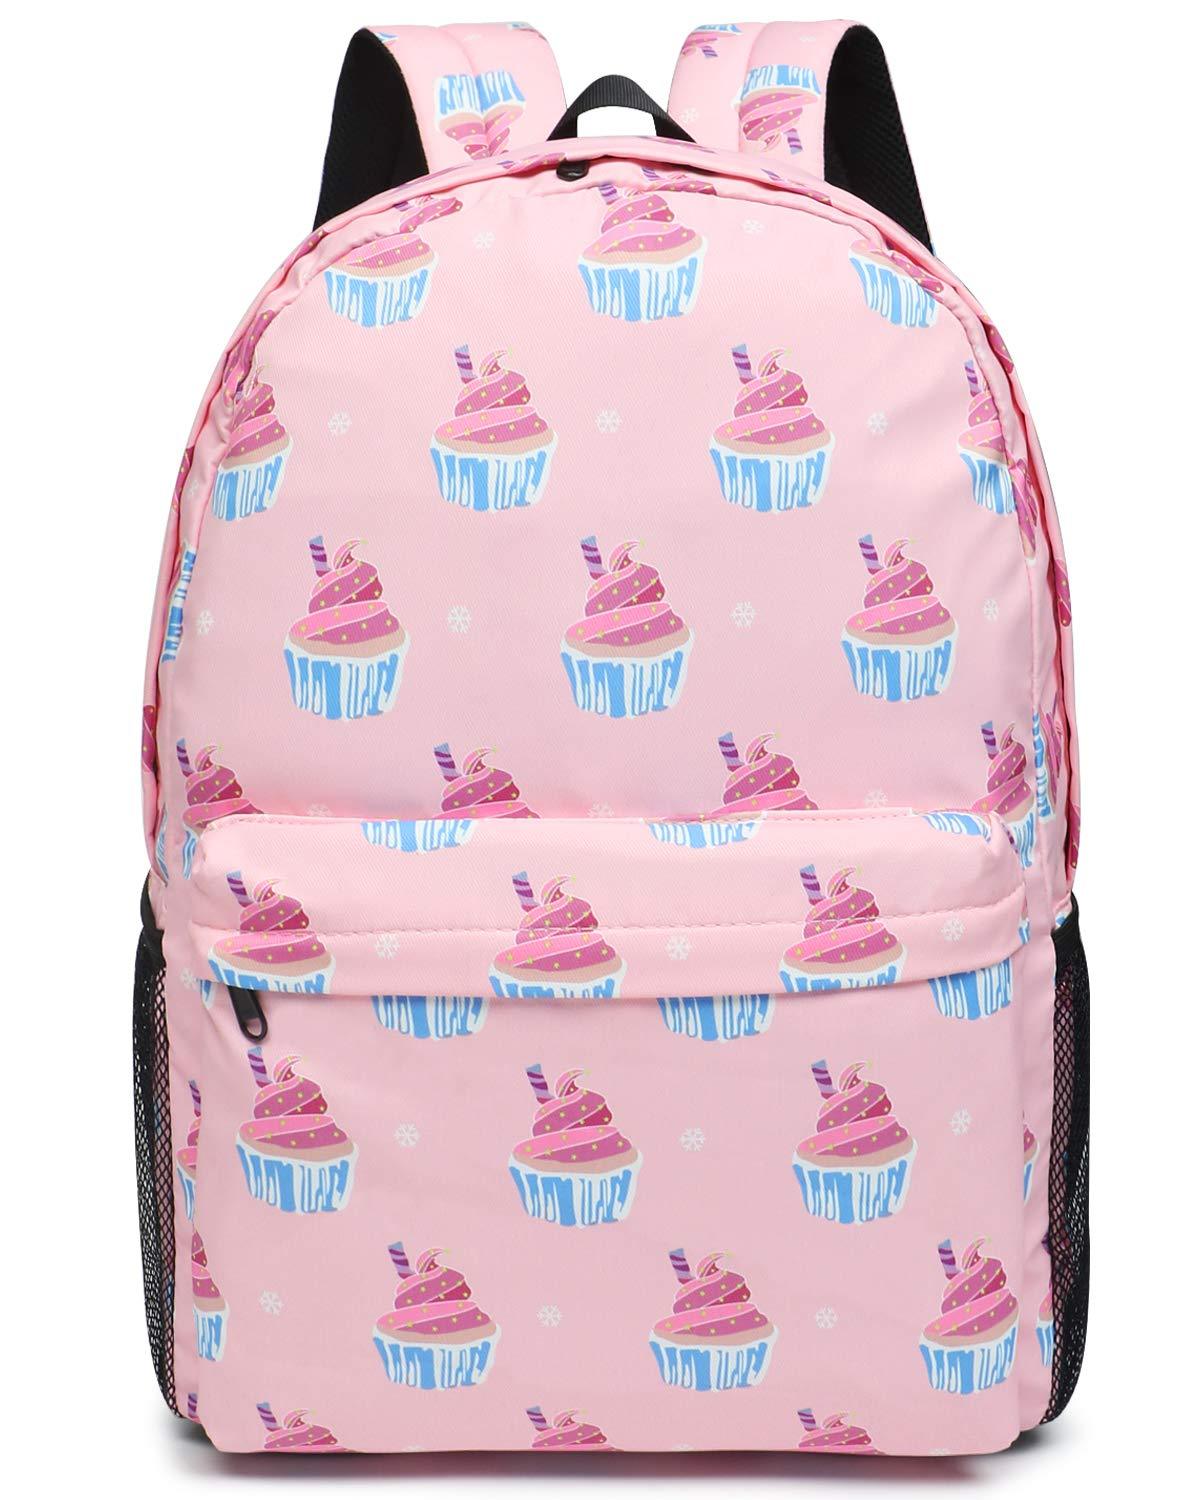 Oflamn Pink Cupcakes Backpack | Bookbag | Daypack | Fit in 15'' Laptop and Multi-pockets with YKK zippers | Super Light Waterproof Nylon | Perfect for Work, Commute, Travel & College by Oflamn